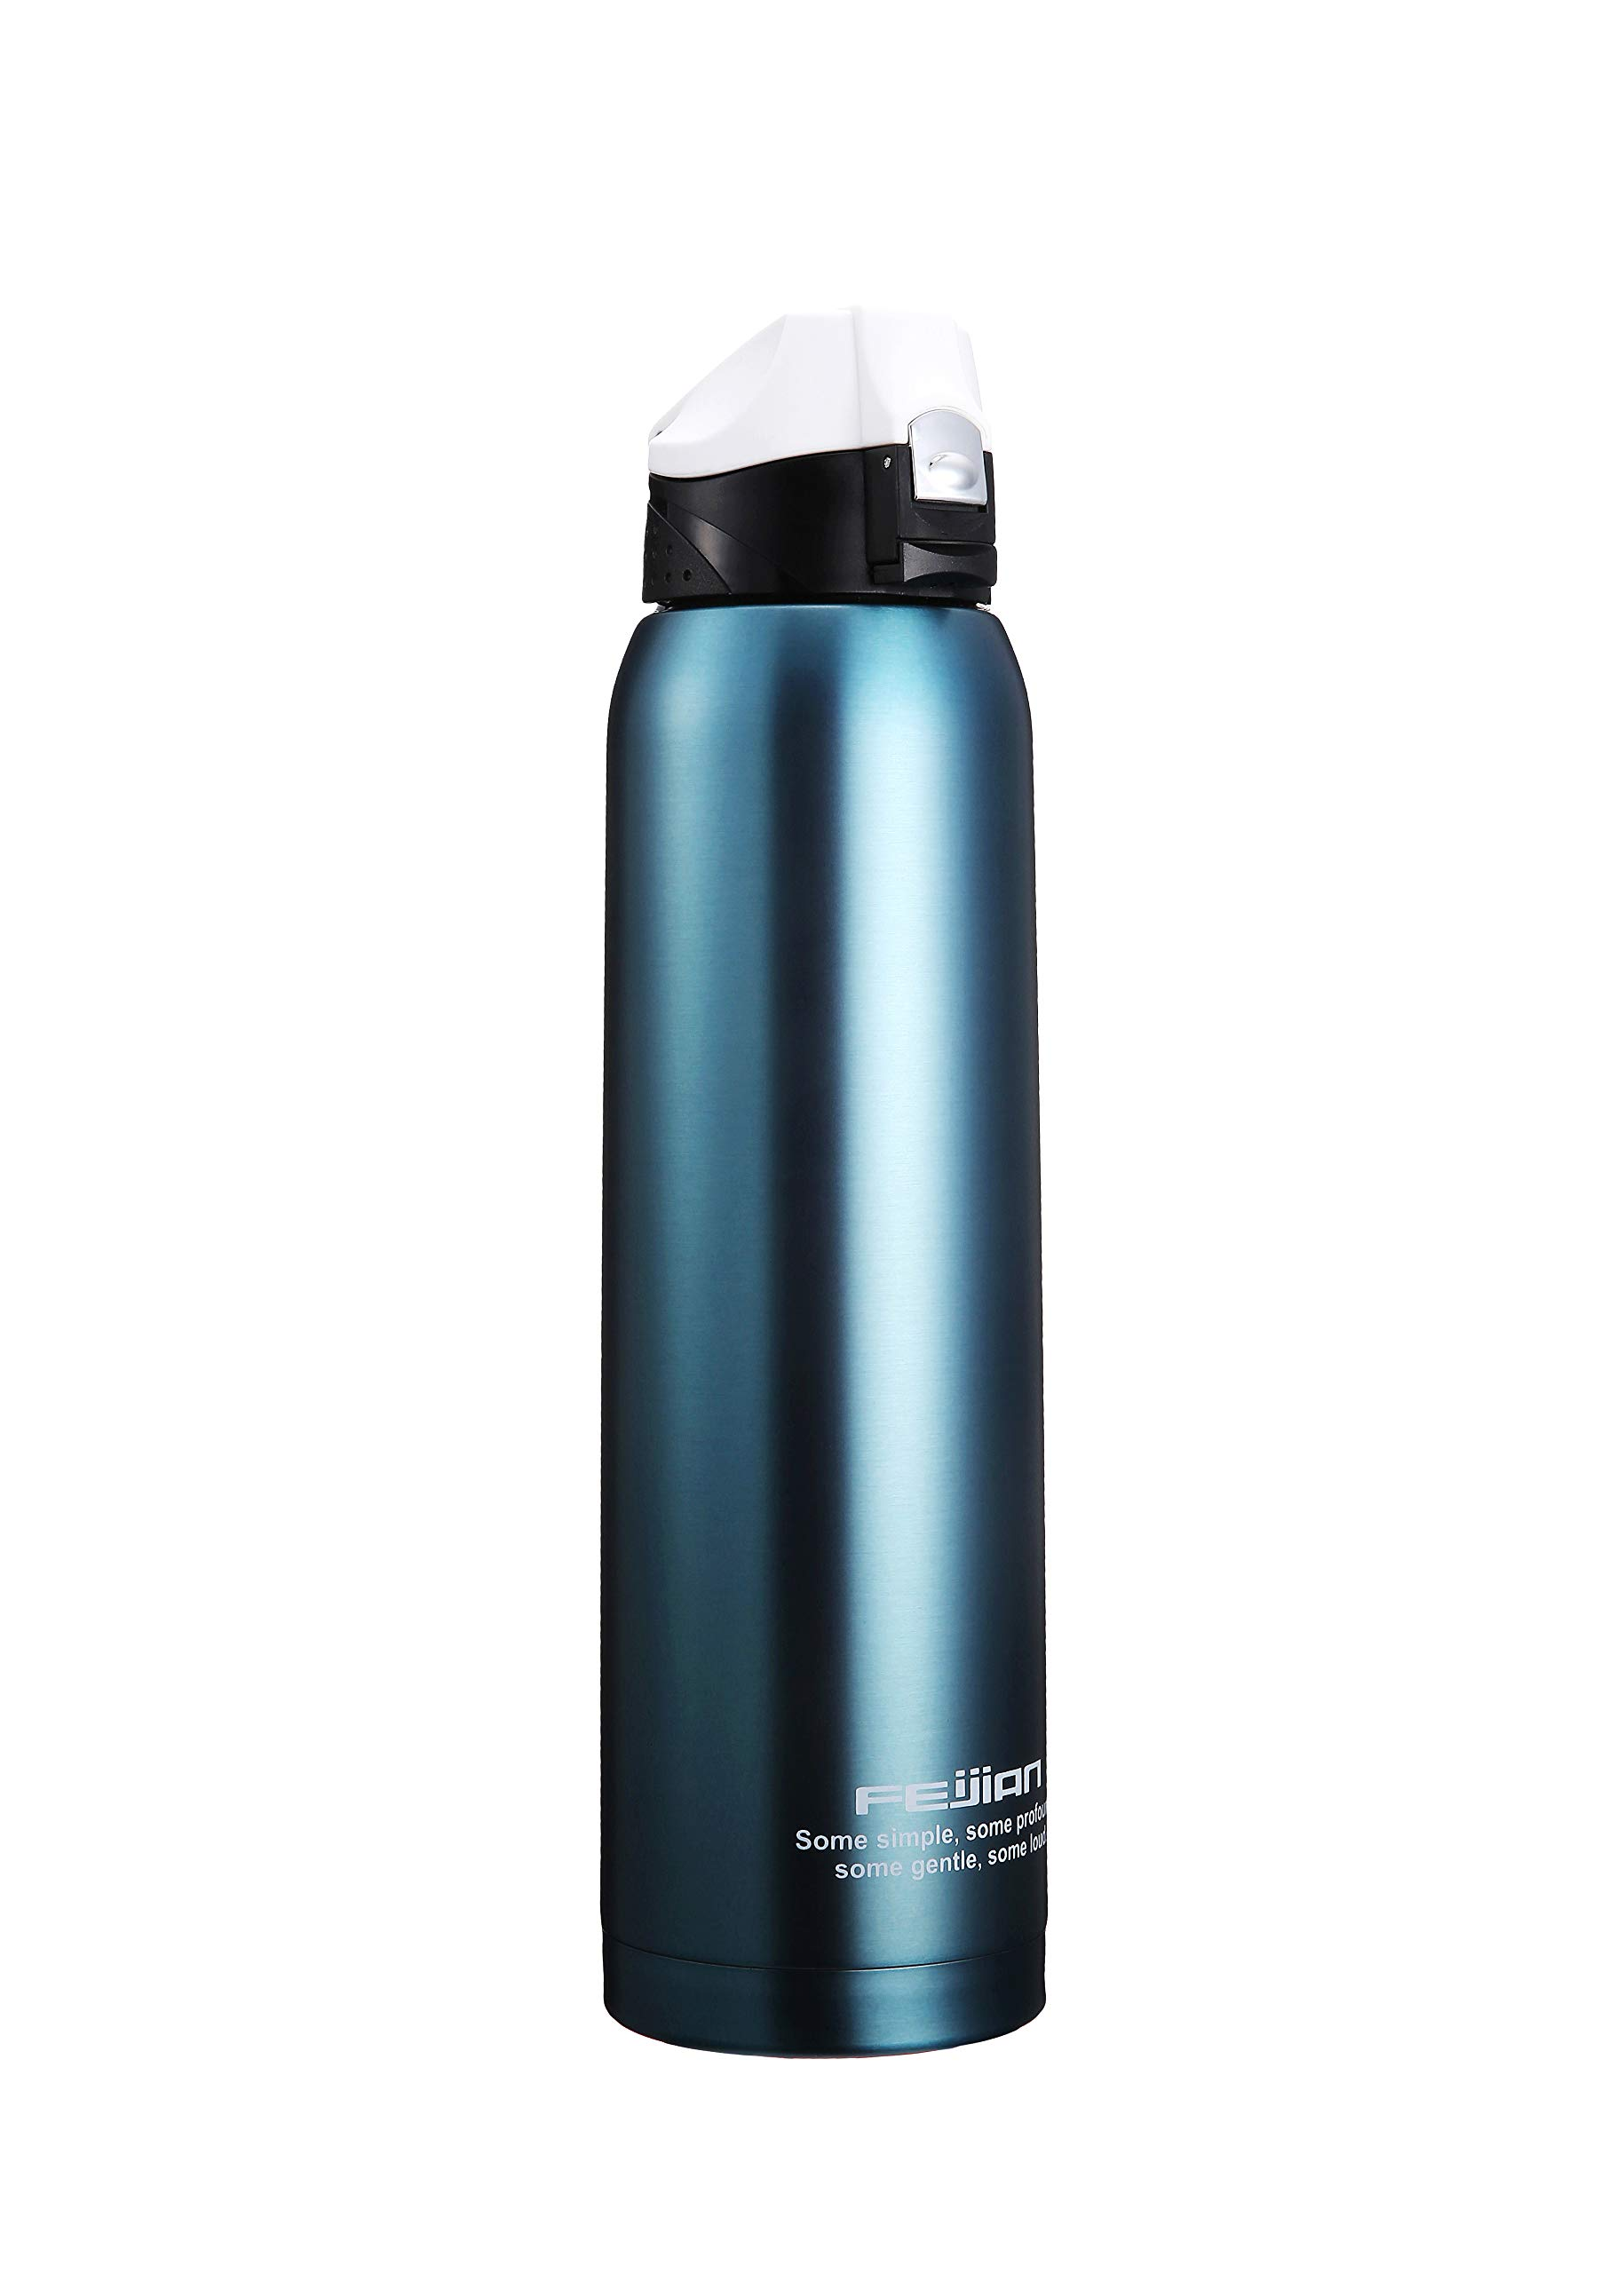 Stainless Steel Insulated Water Bottle - 36 OZ FEIJIAN (2018 New Arrival) Double Walled Vacuum Insulated 1 Liter Water Bottle Wide Mouth With Potarble Bag